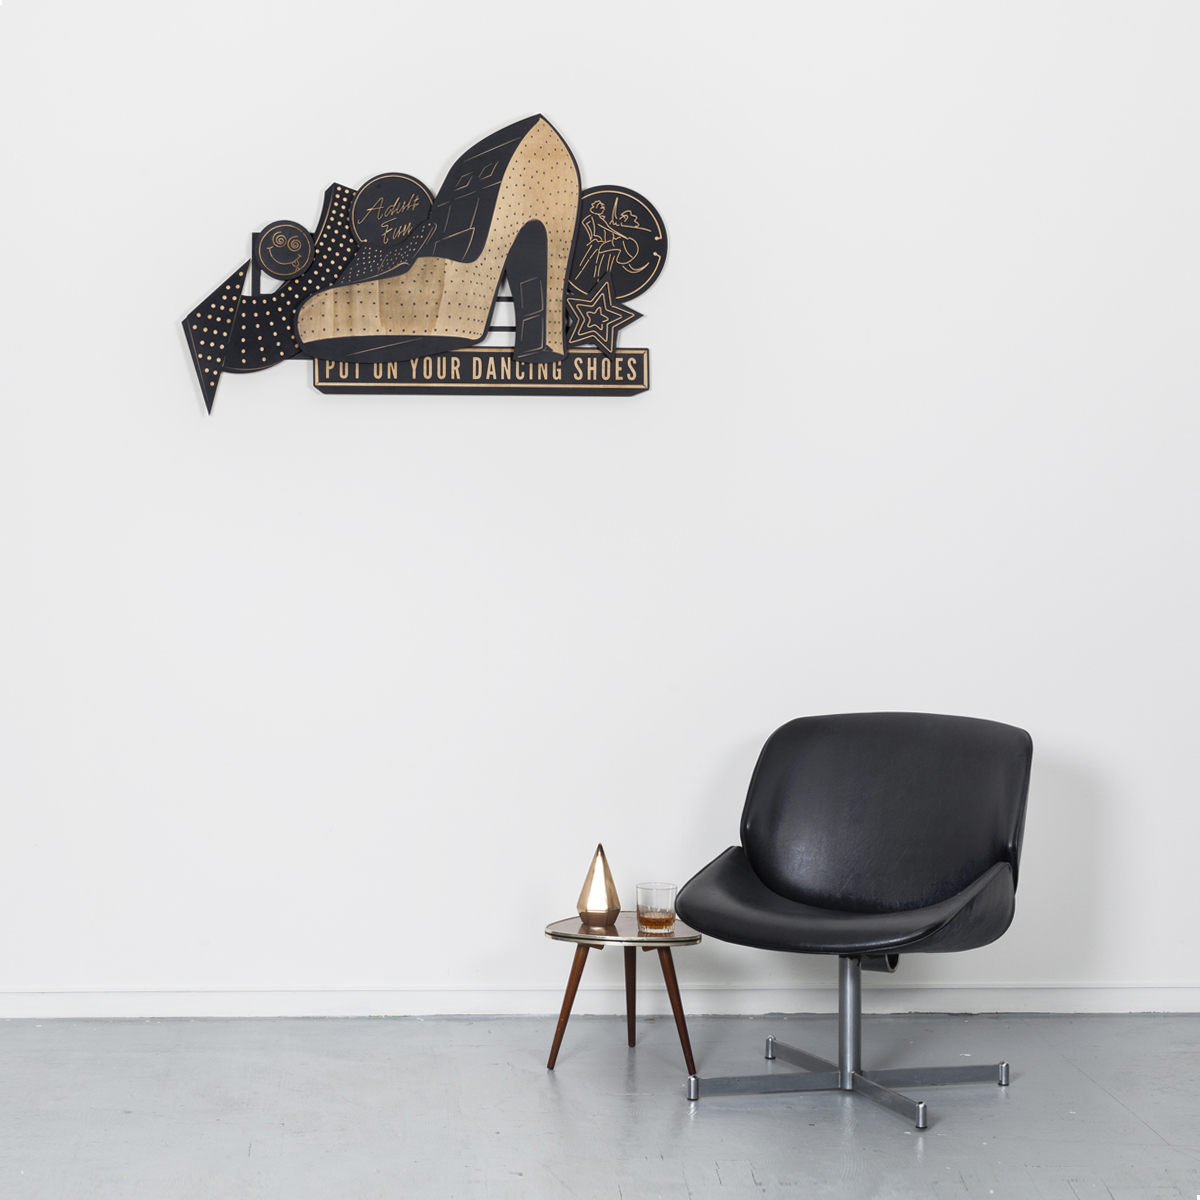 Studio Ruwedata - put on your dancing shoes - wall sculpture artwork